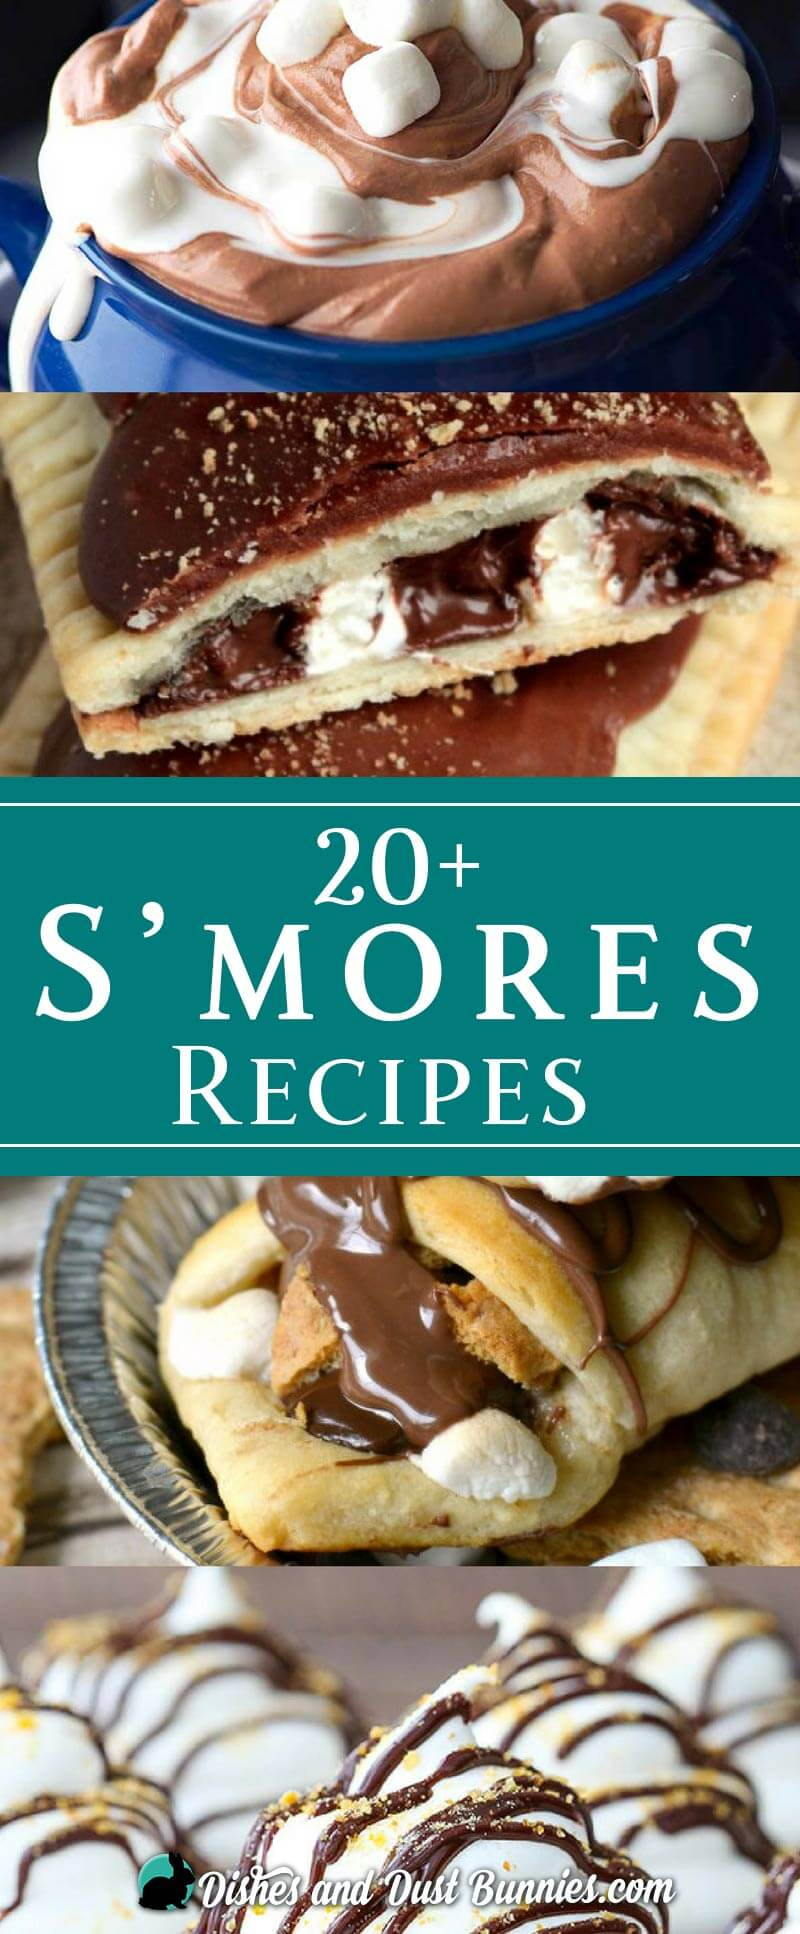 S'mores Recipes - dishesanddustbunnies.com